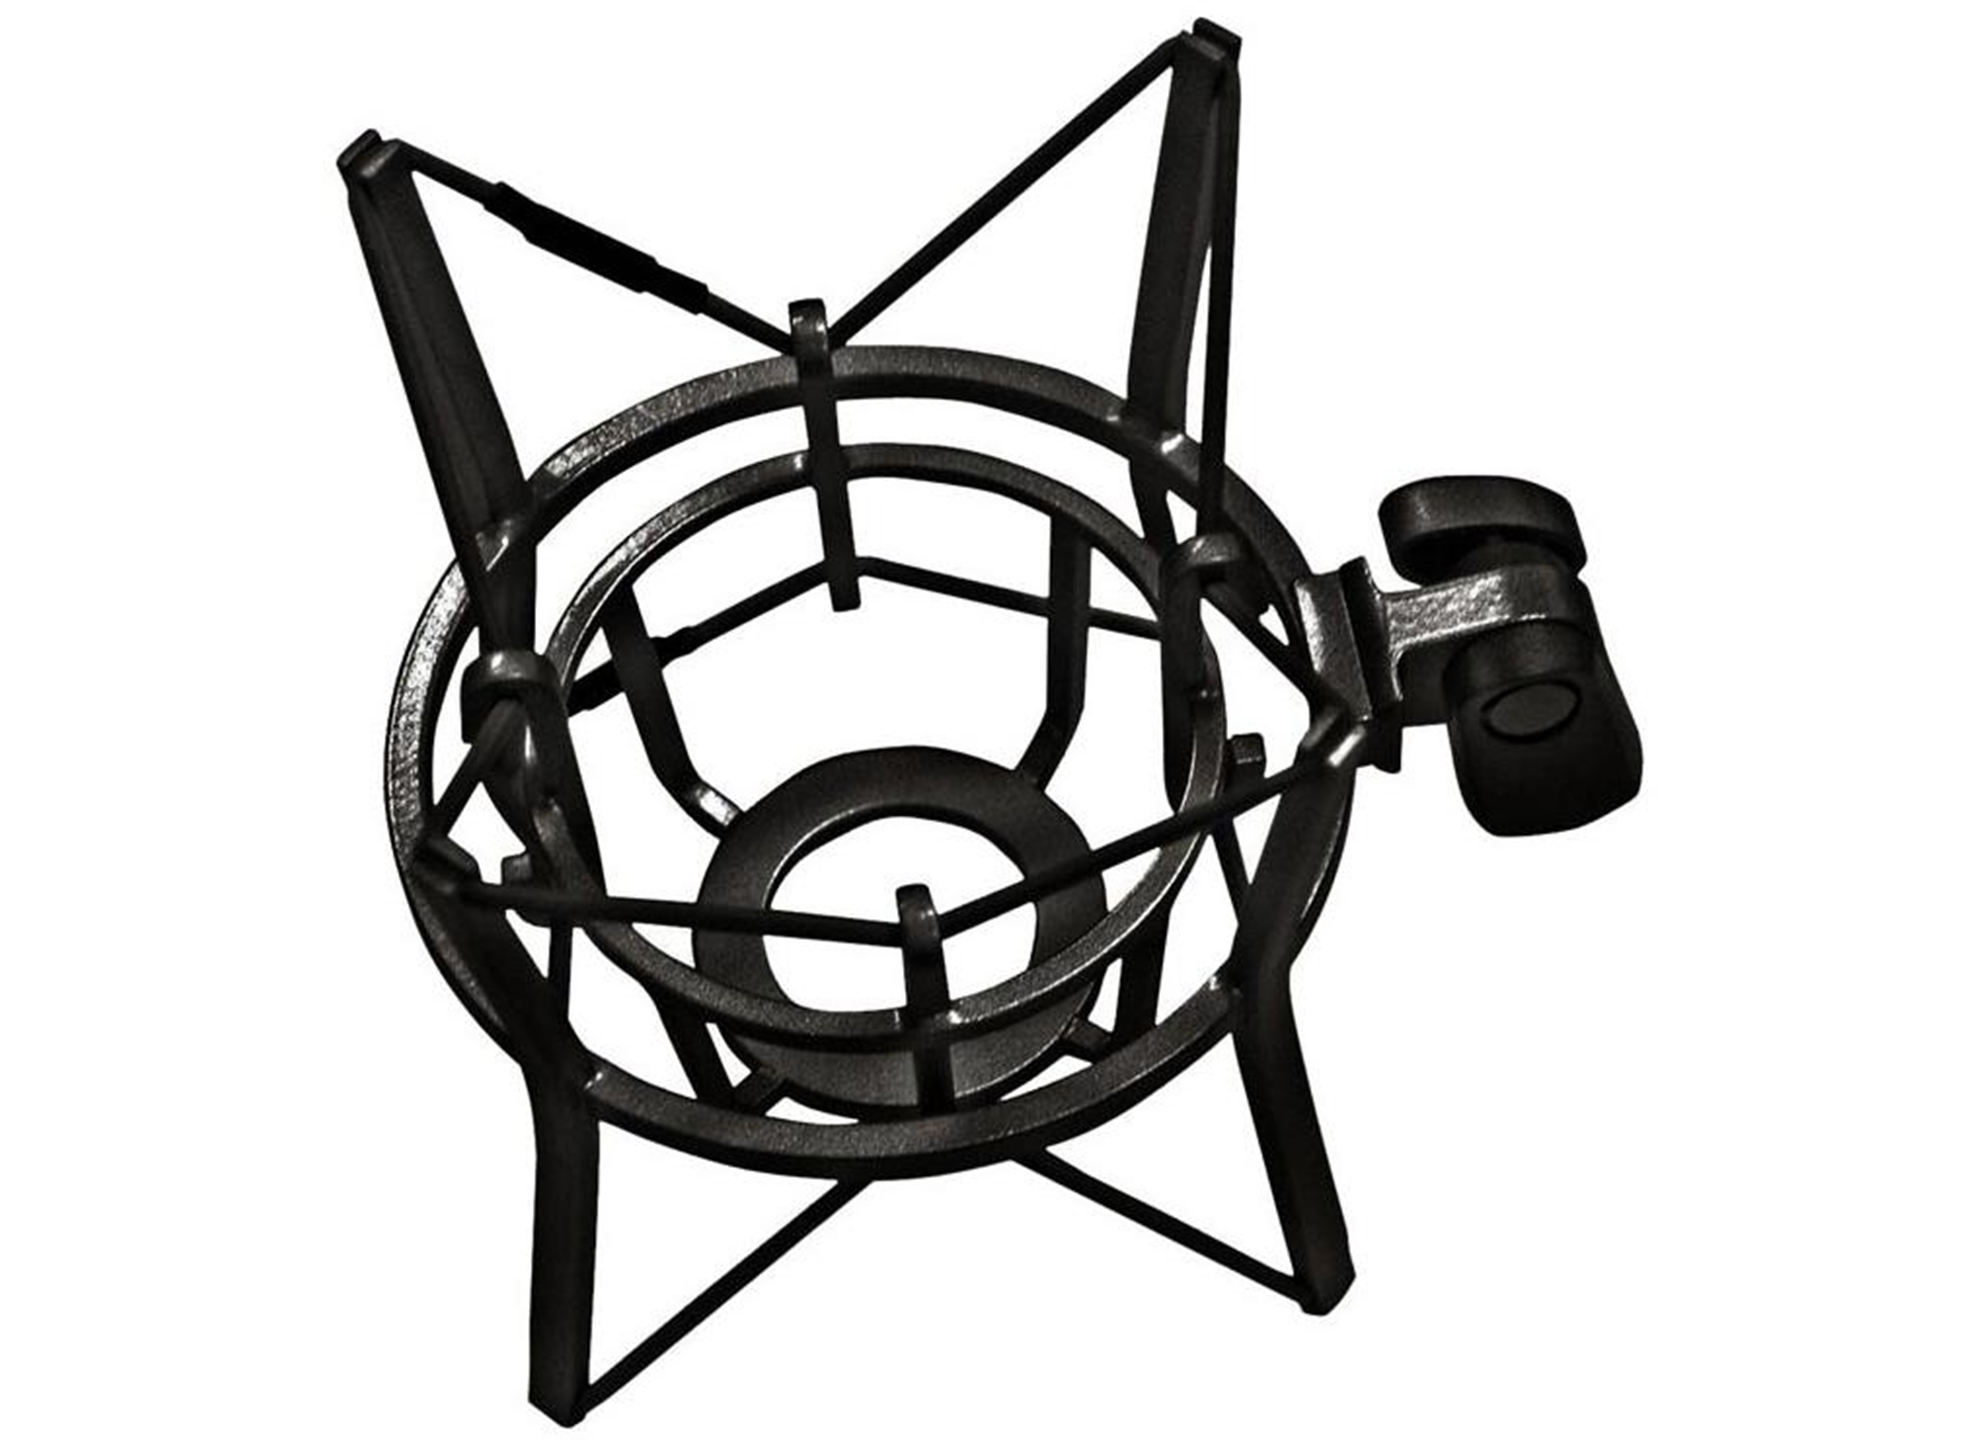 Shock Mount PSM-1 för Podcaster